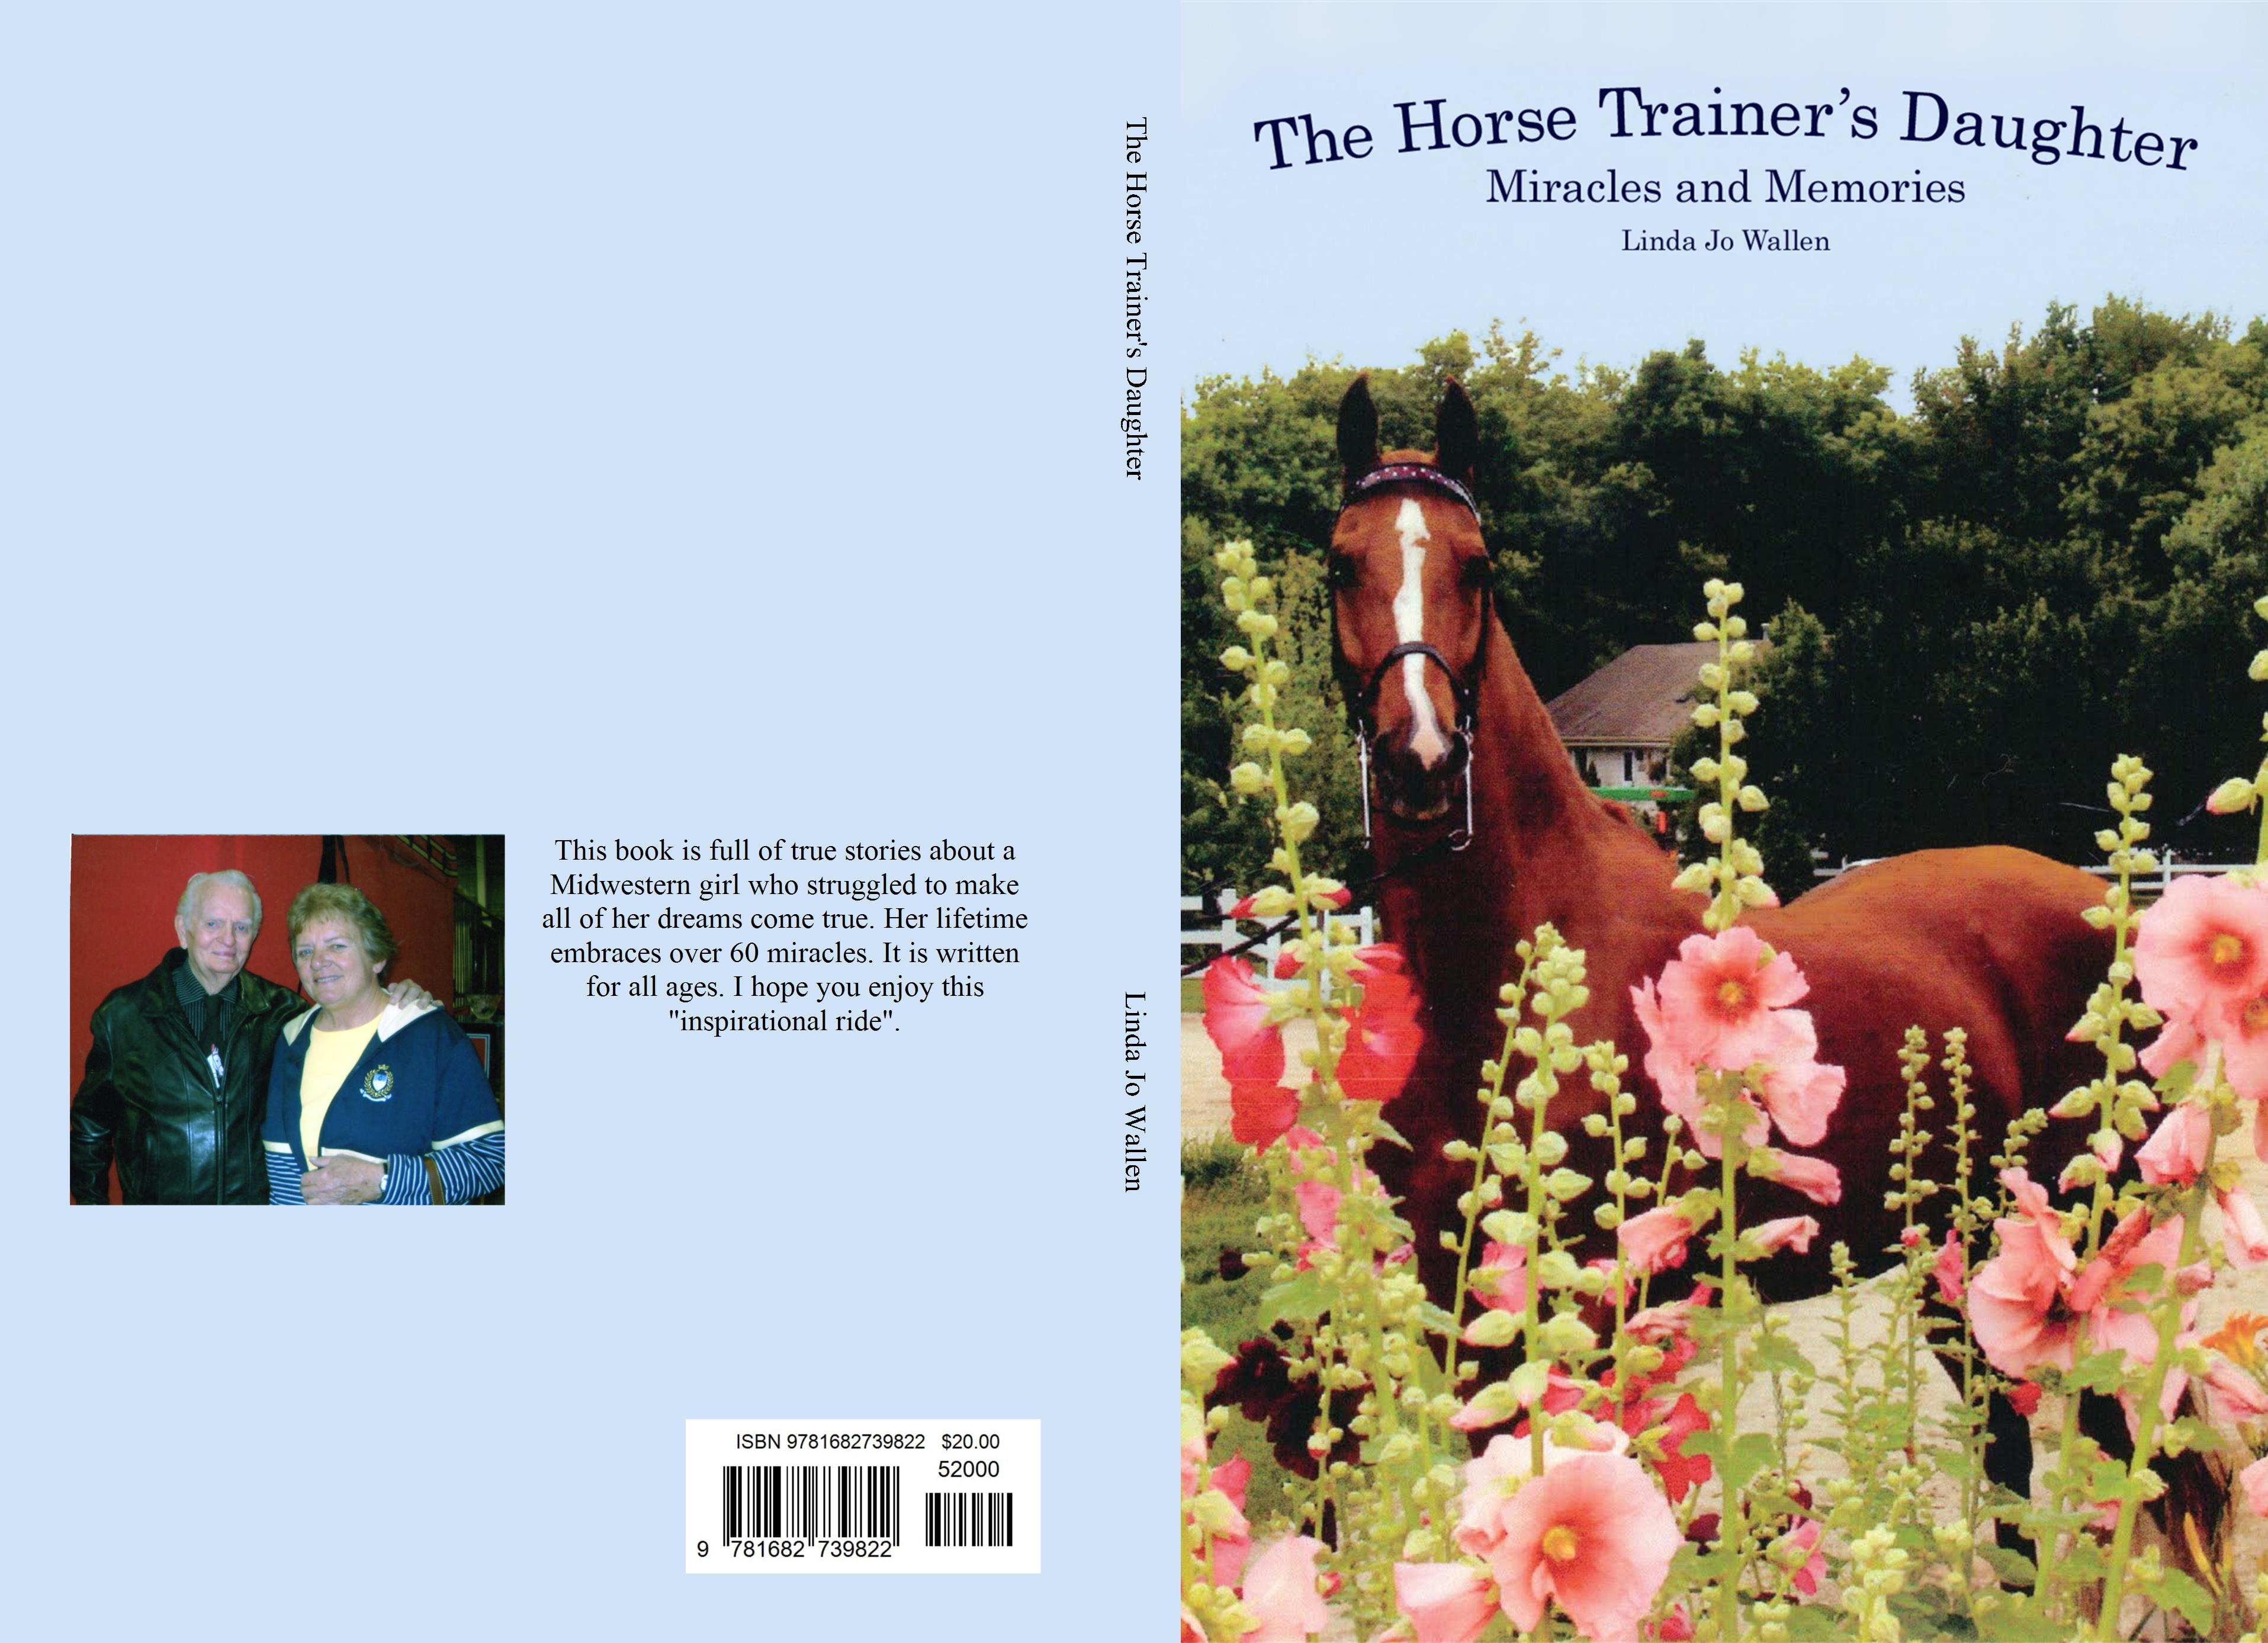 The Horse Trainer